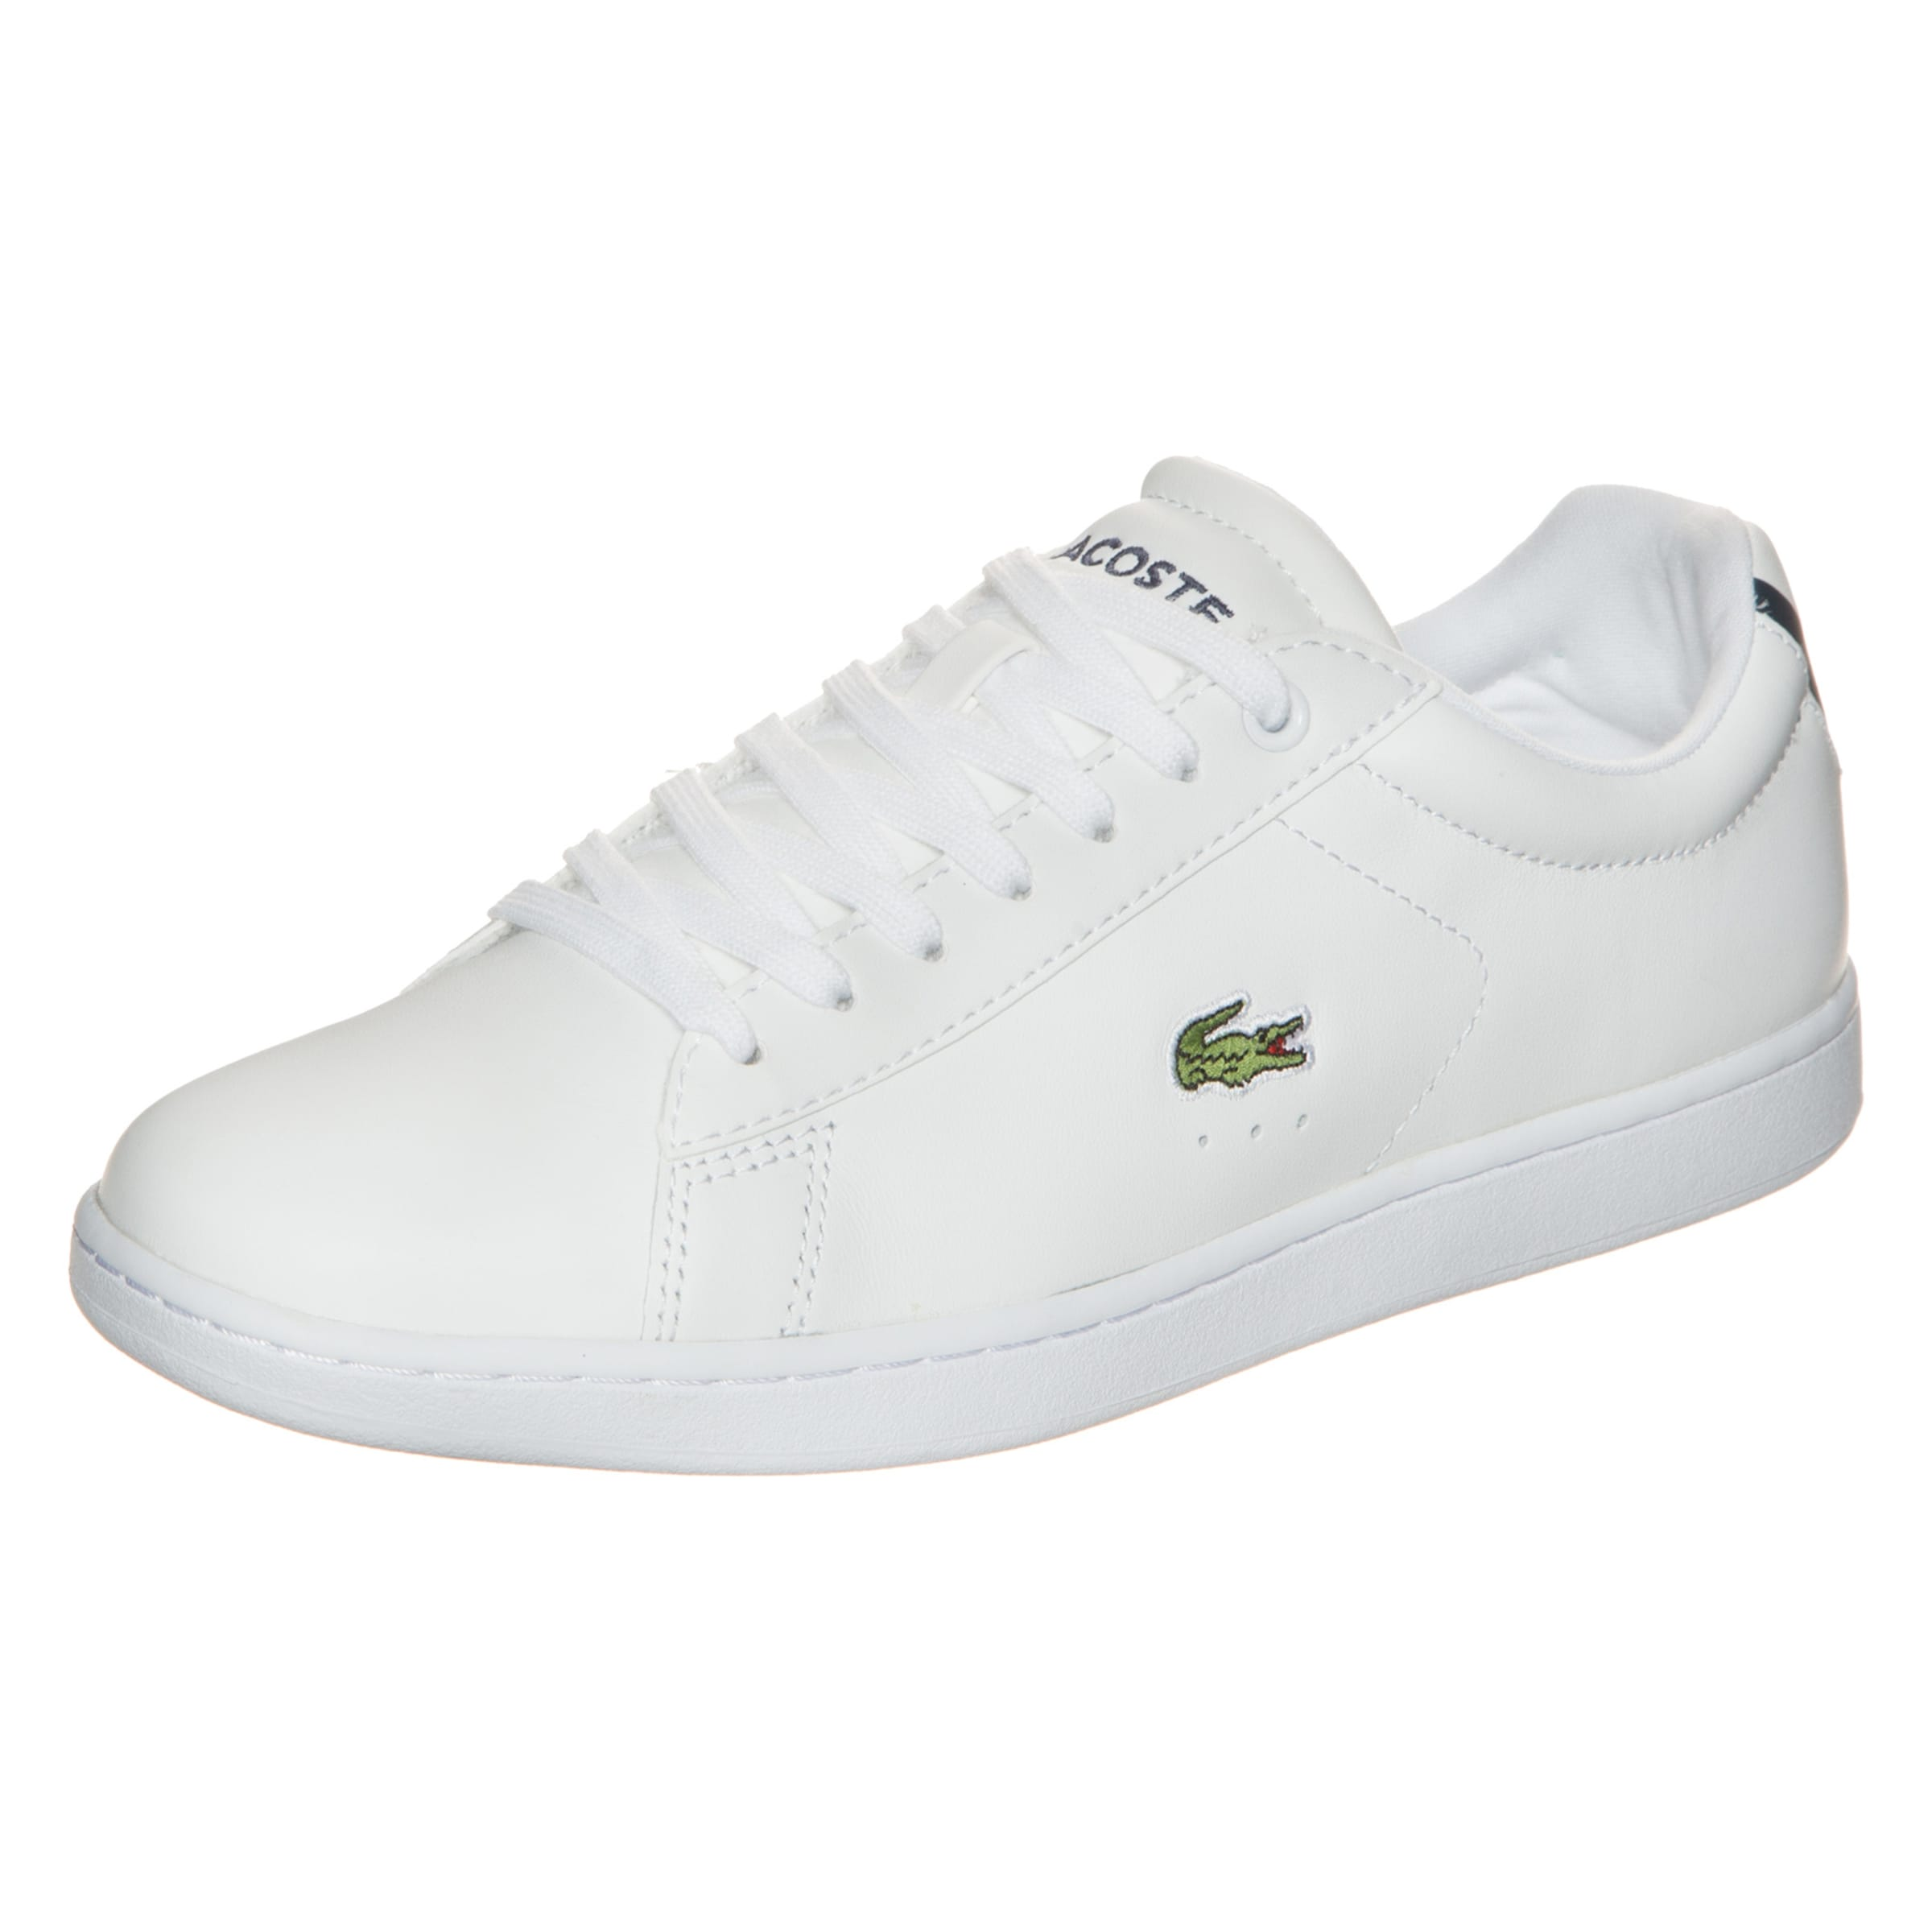 LACOSTE | Turnschuhe Carnaby BL BL Carnaby 1 13fa2a